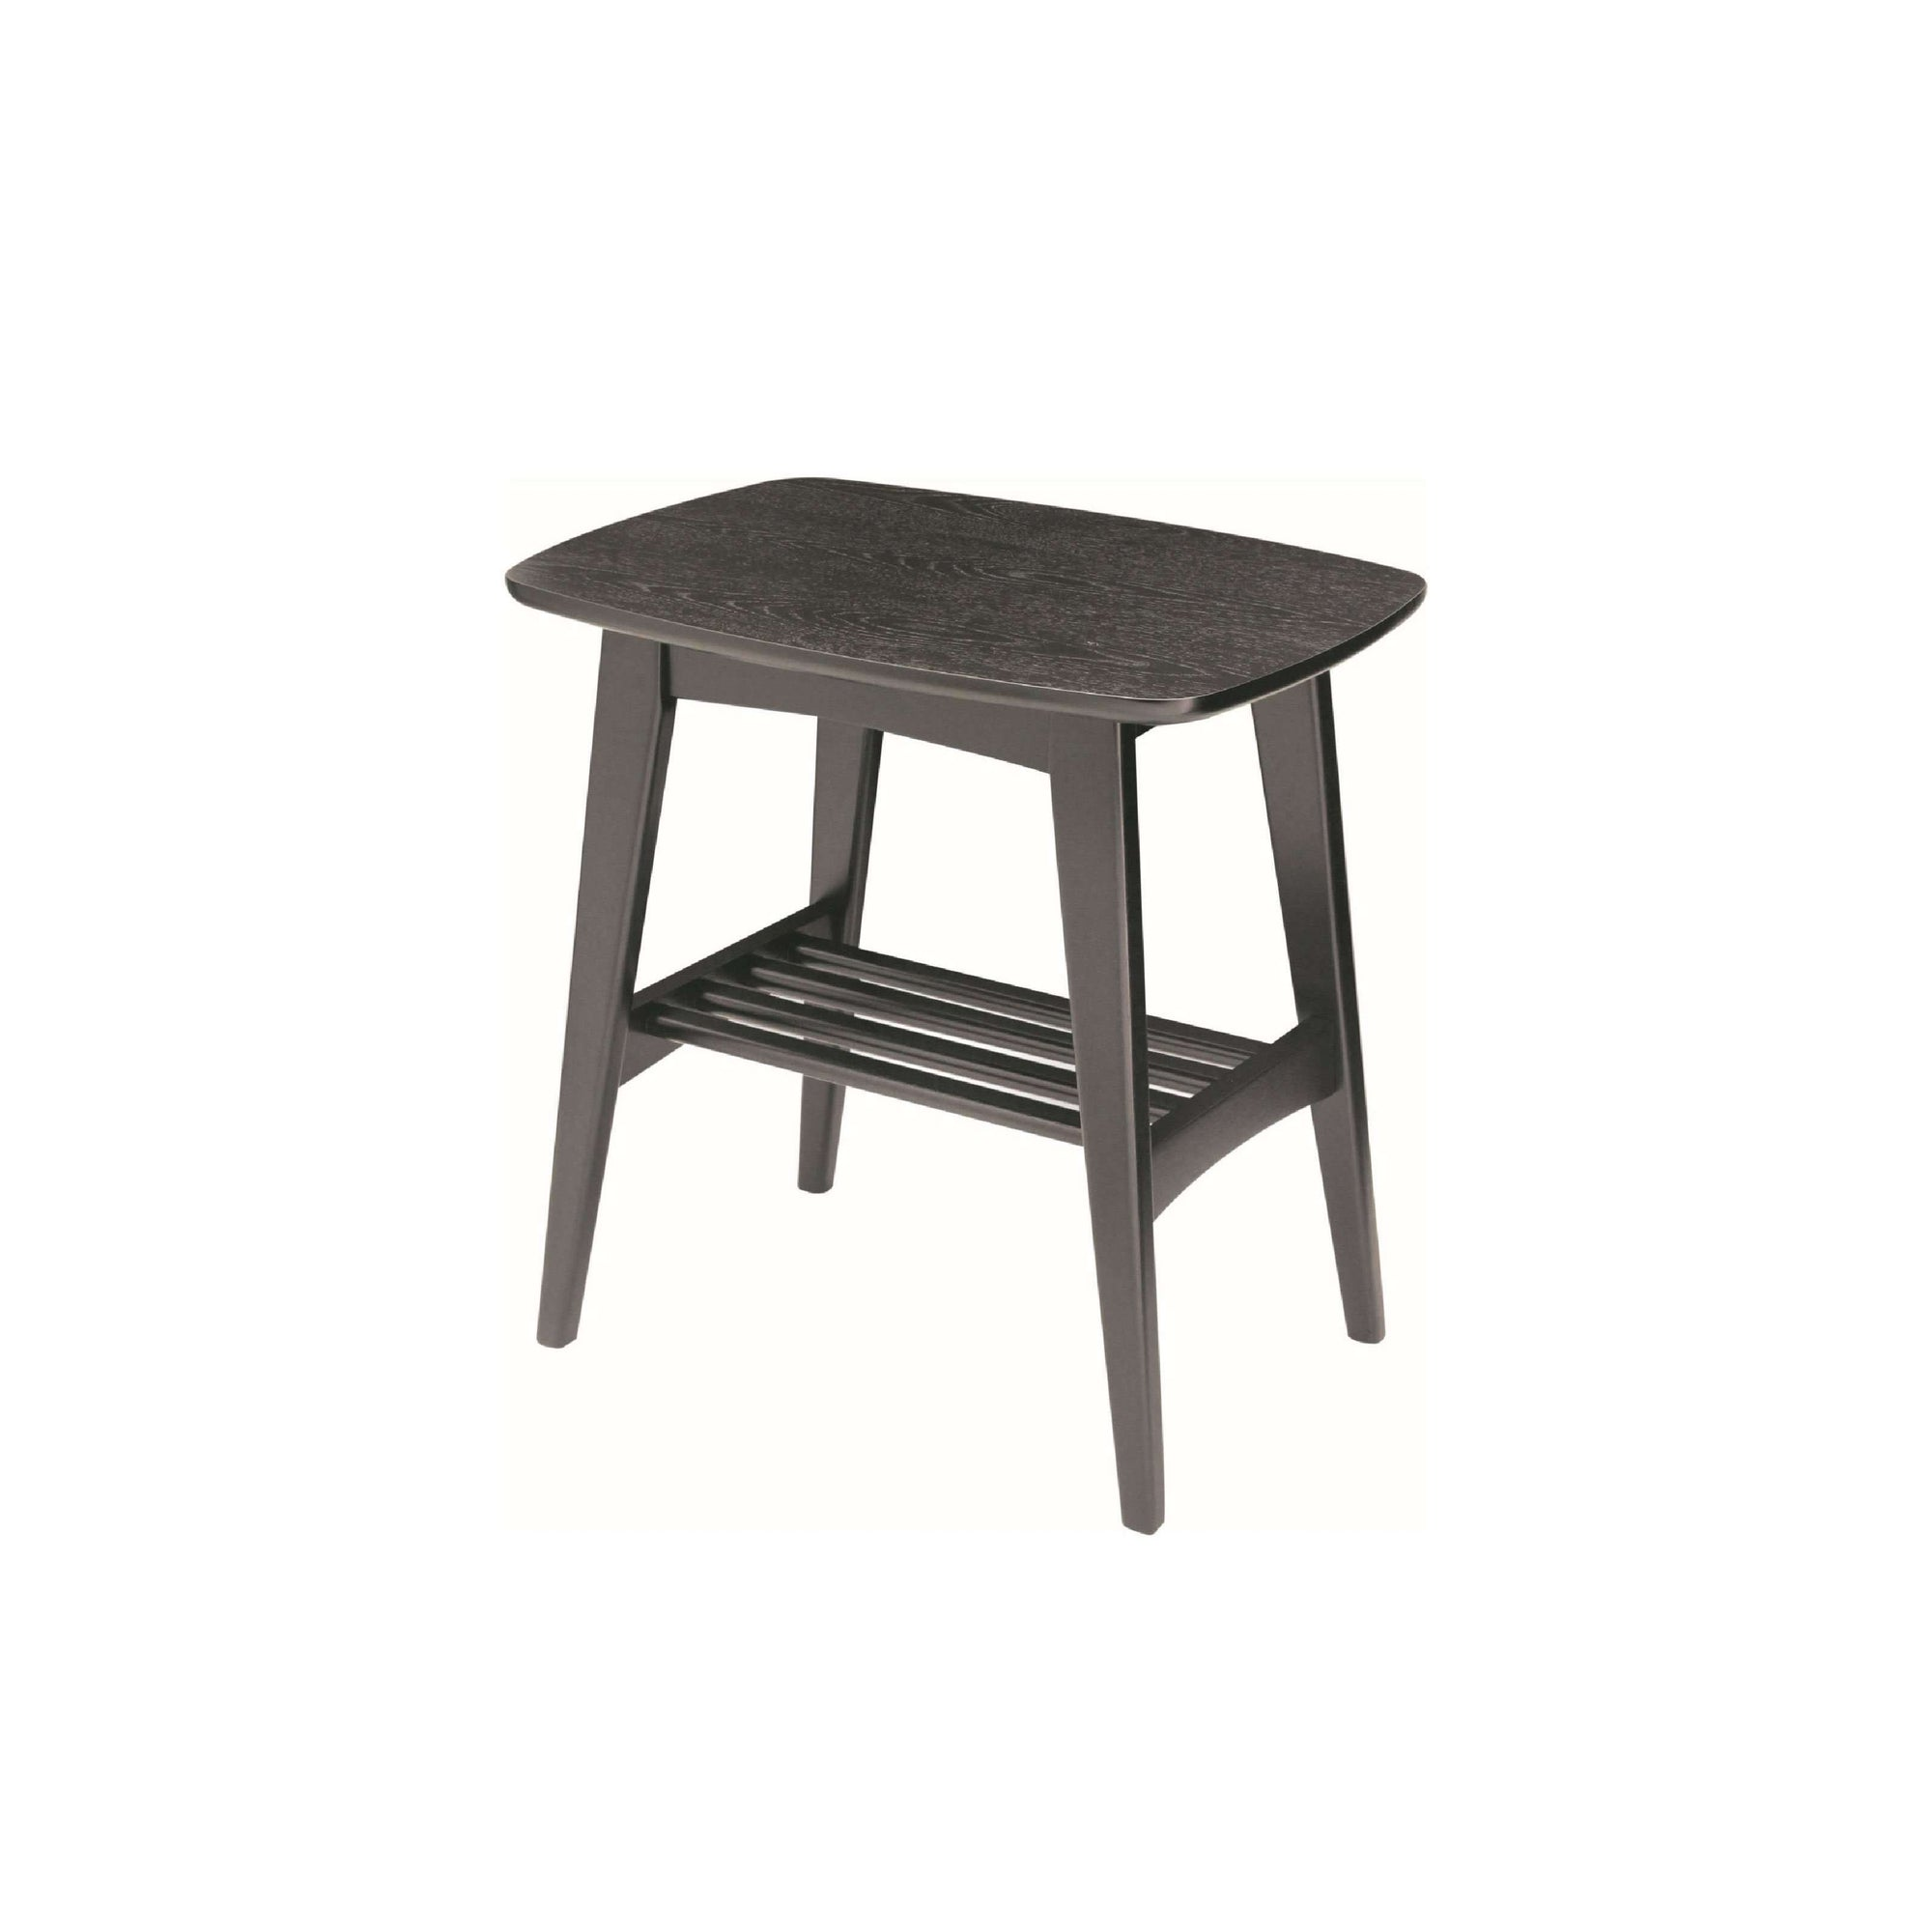 HUBIE Side Table in Black Ash Veneer